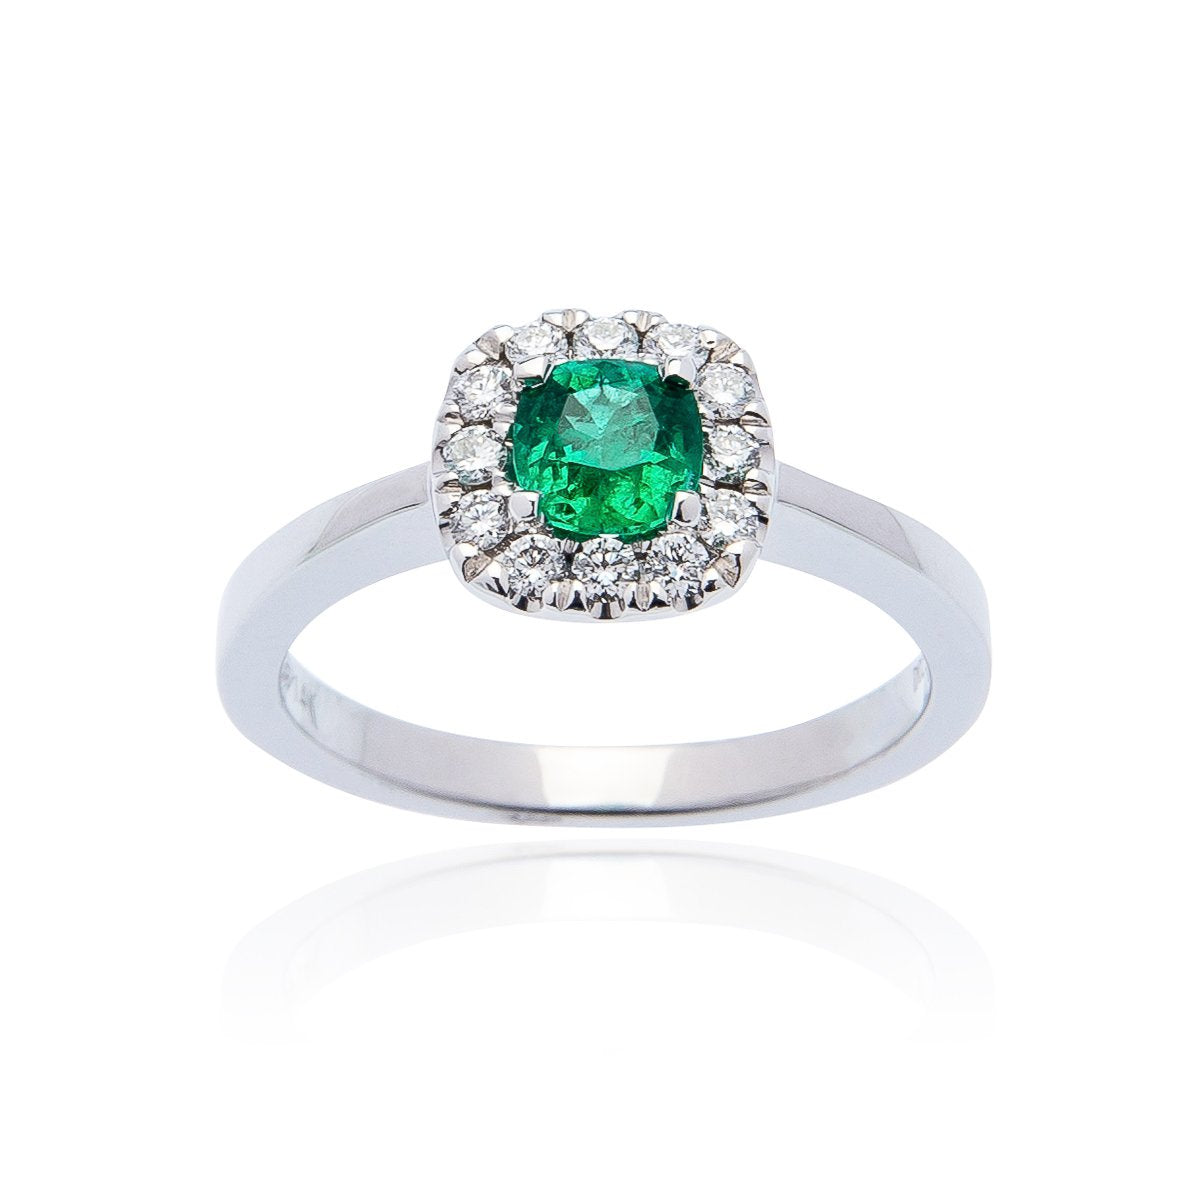 Sabel Collection 14K White Gold Cushion Emerald and Diamond Halo Ring